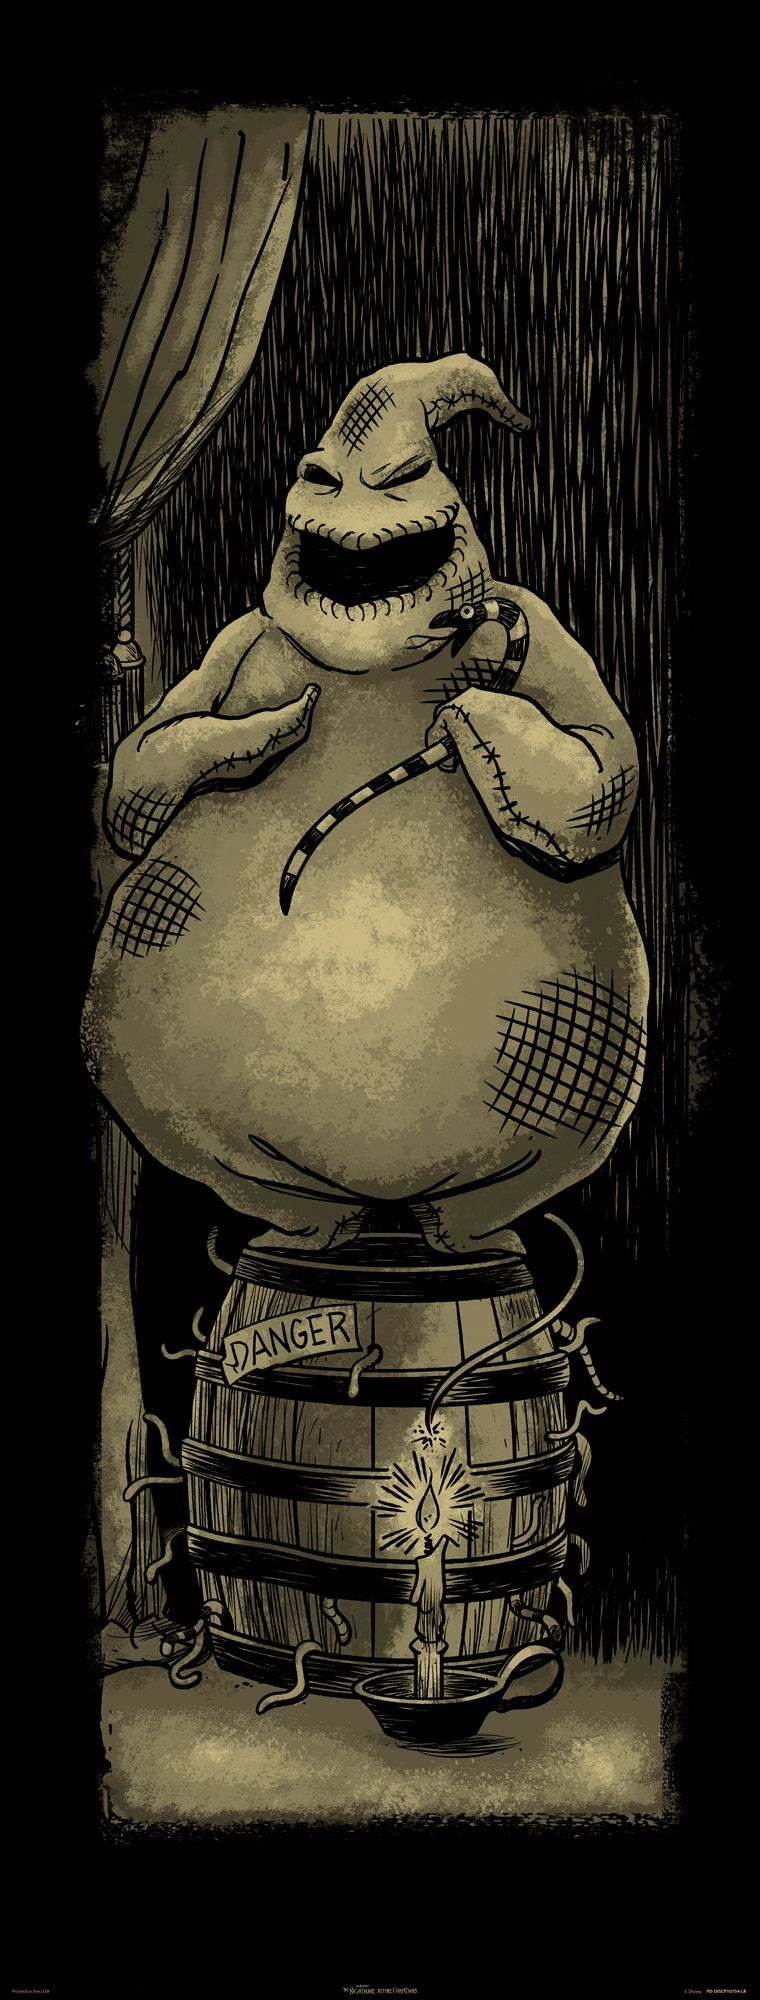 Get this exclusive Oogie Boogie Haunted Mansion Holiday